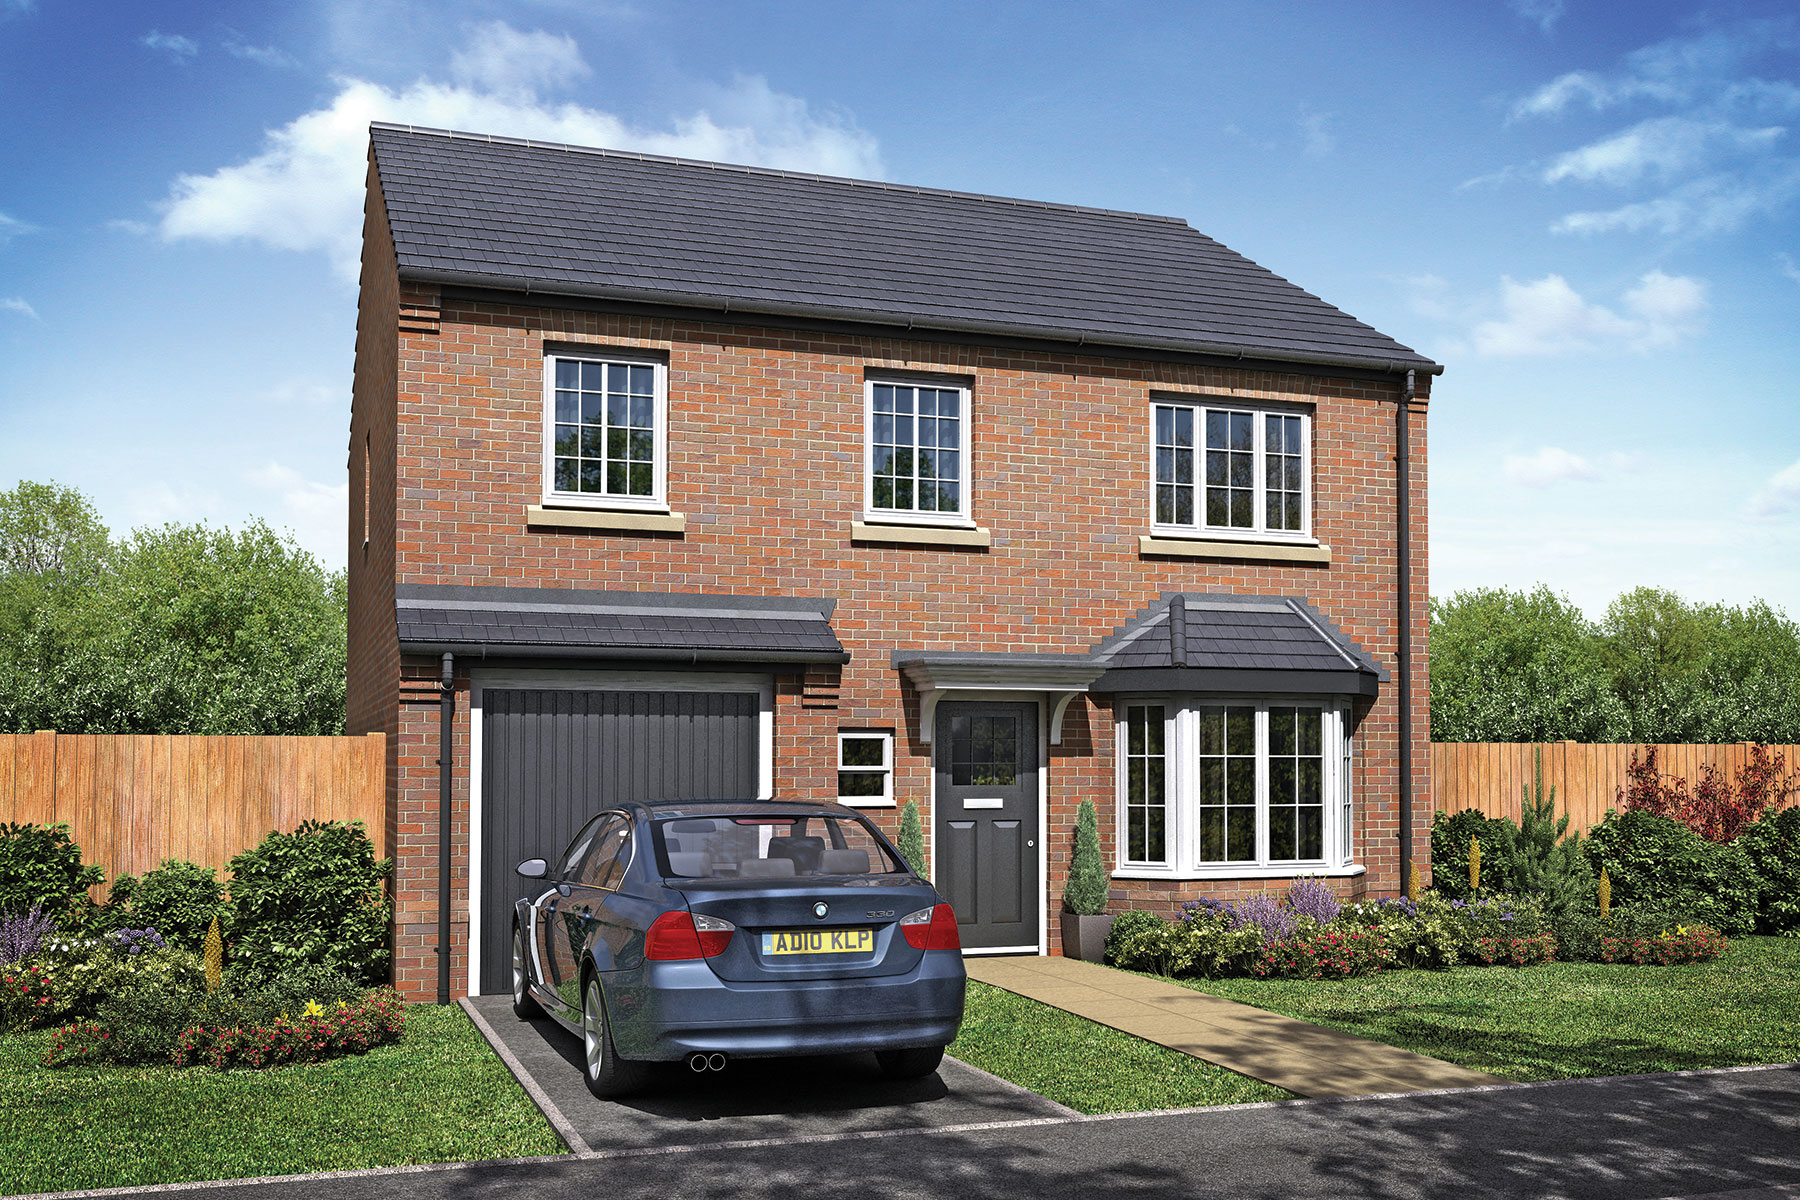 Taylor Wimpey - Xpressions - The Downham